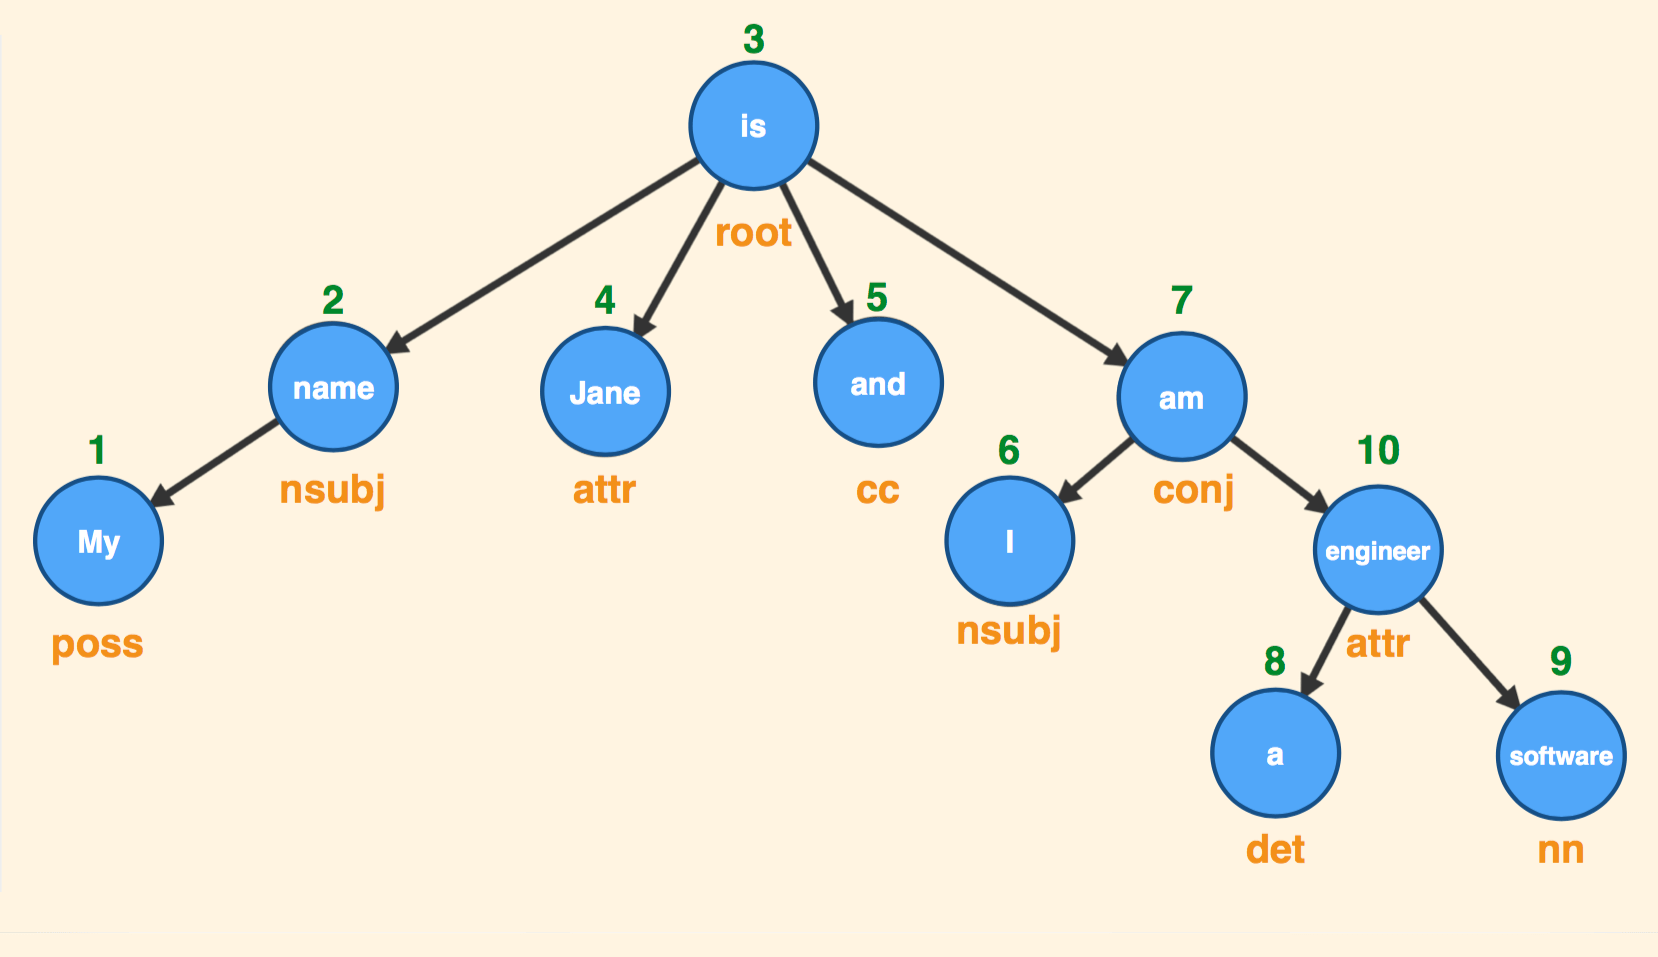 Defining relationships with Dependency Grammar